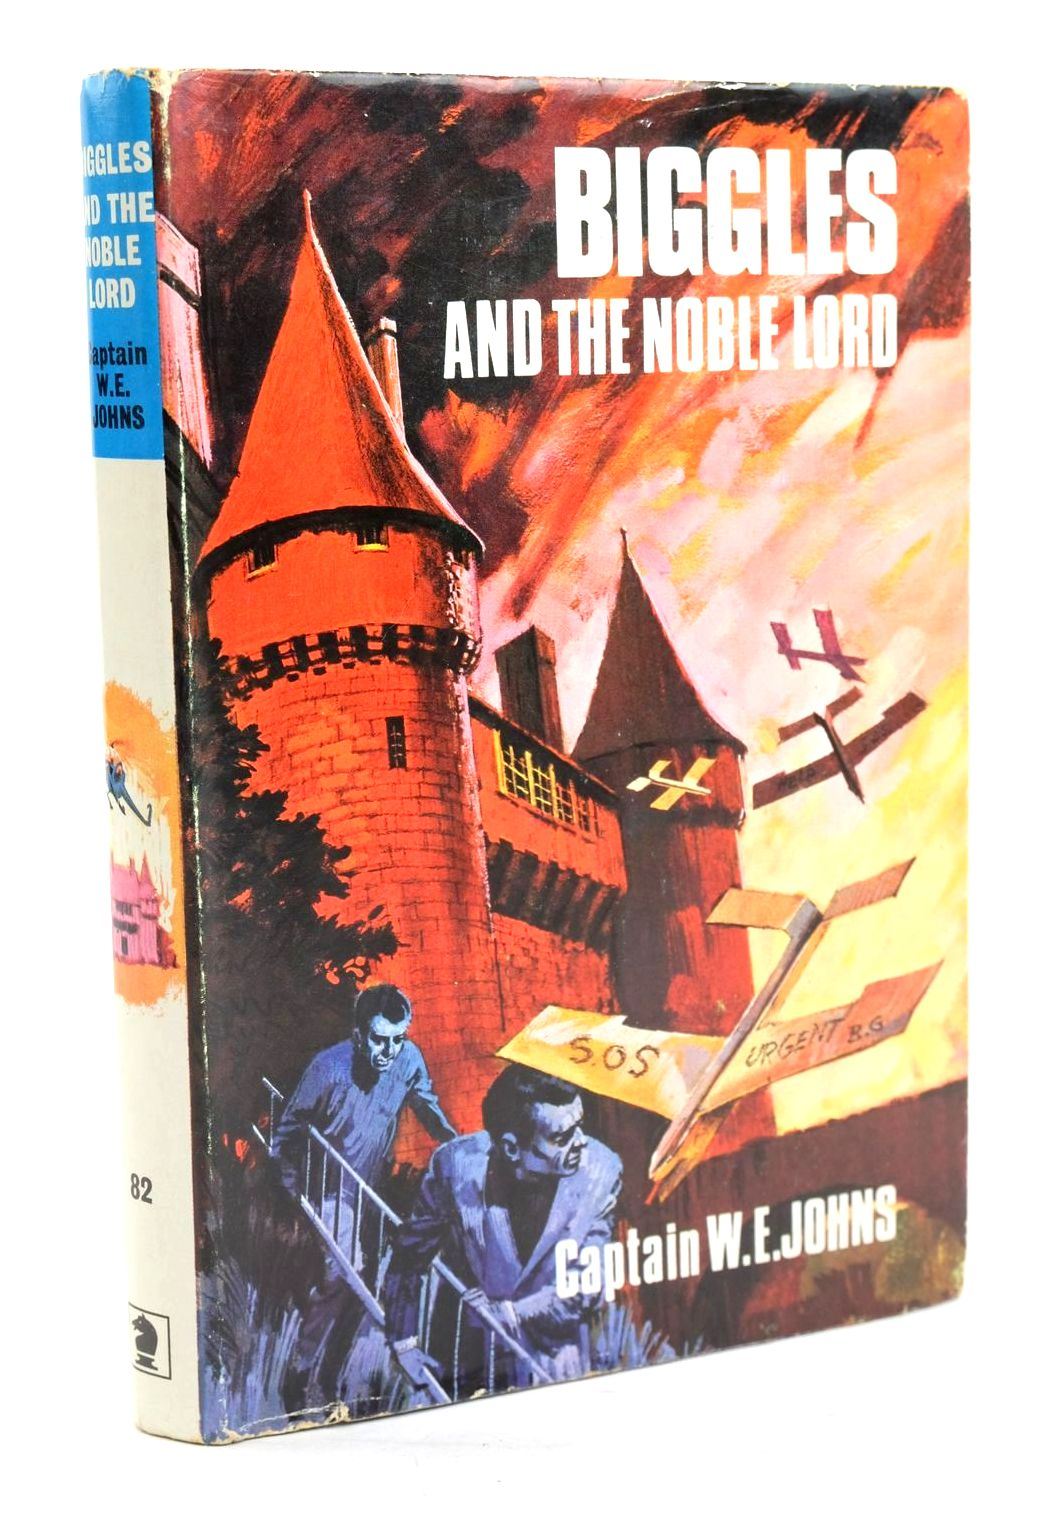 Photo of BIGGLES AND THE NOBLE LORD written by Johns, W.E. published by Brockhampton Press (STOCK CODE: 1319751)  for sale by Stella & Rose's Books